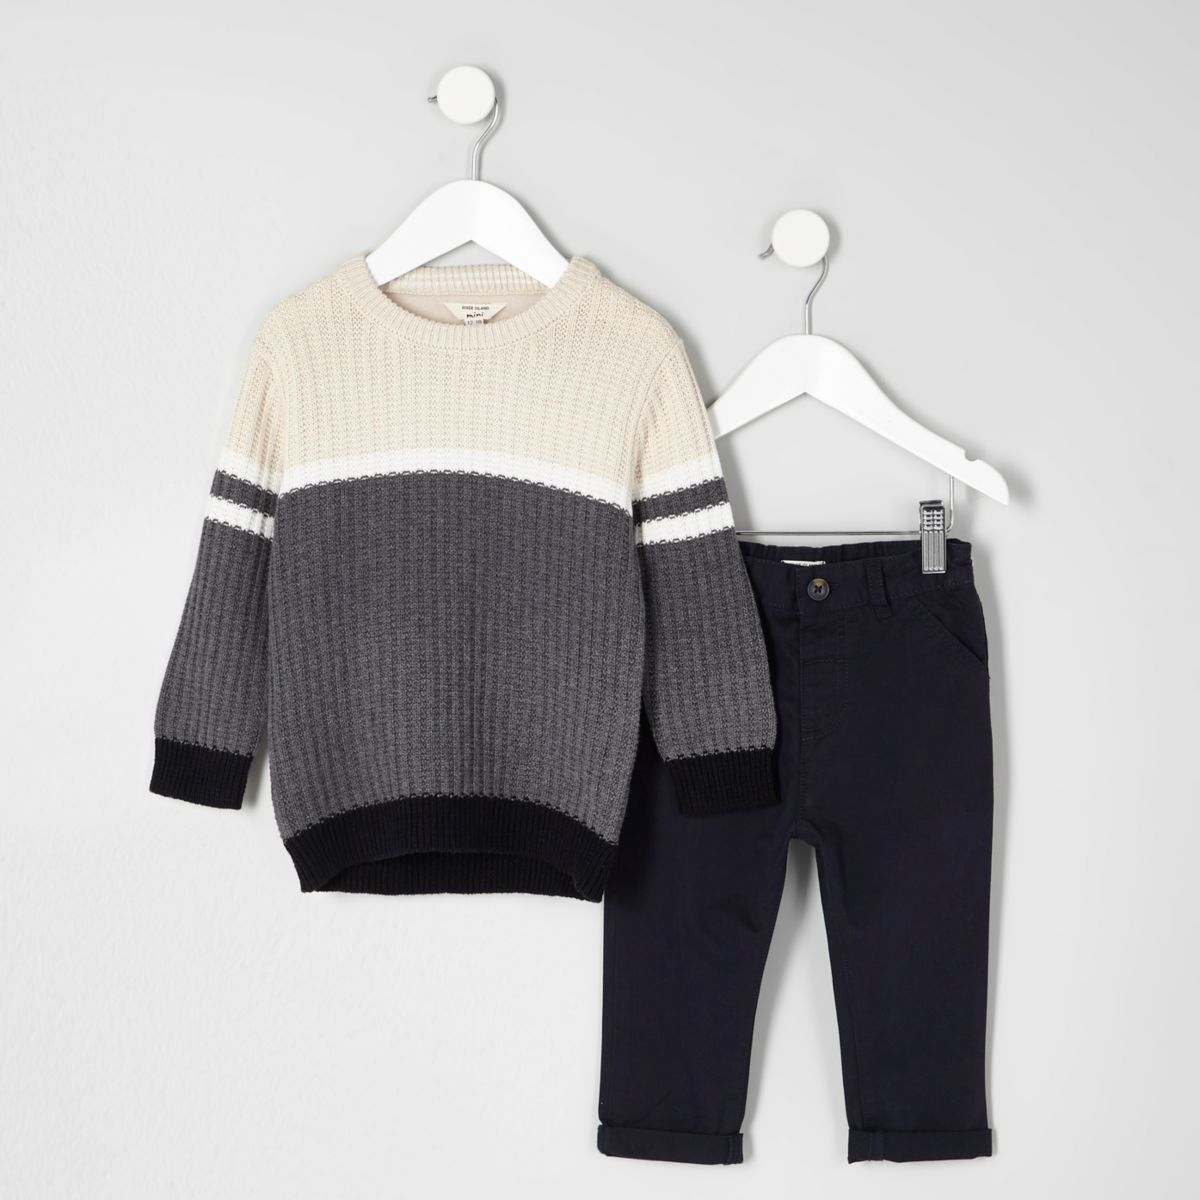 Mini boys grey block sweater and chinos outfit